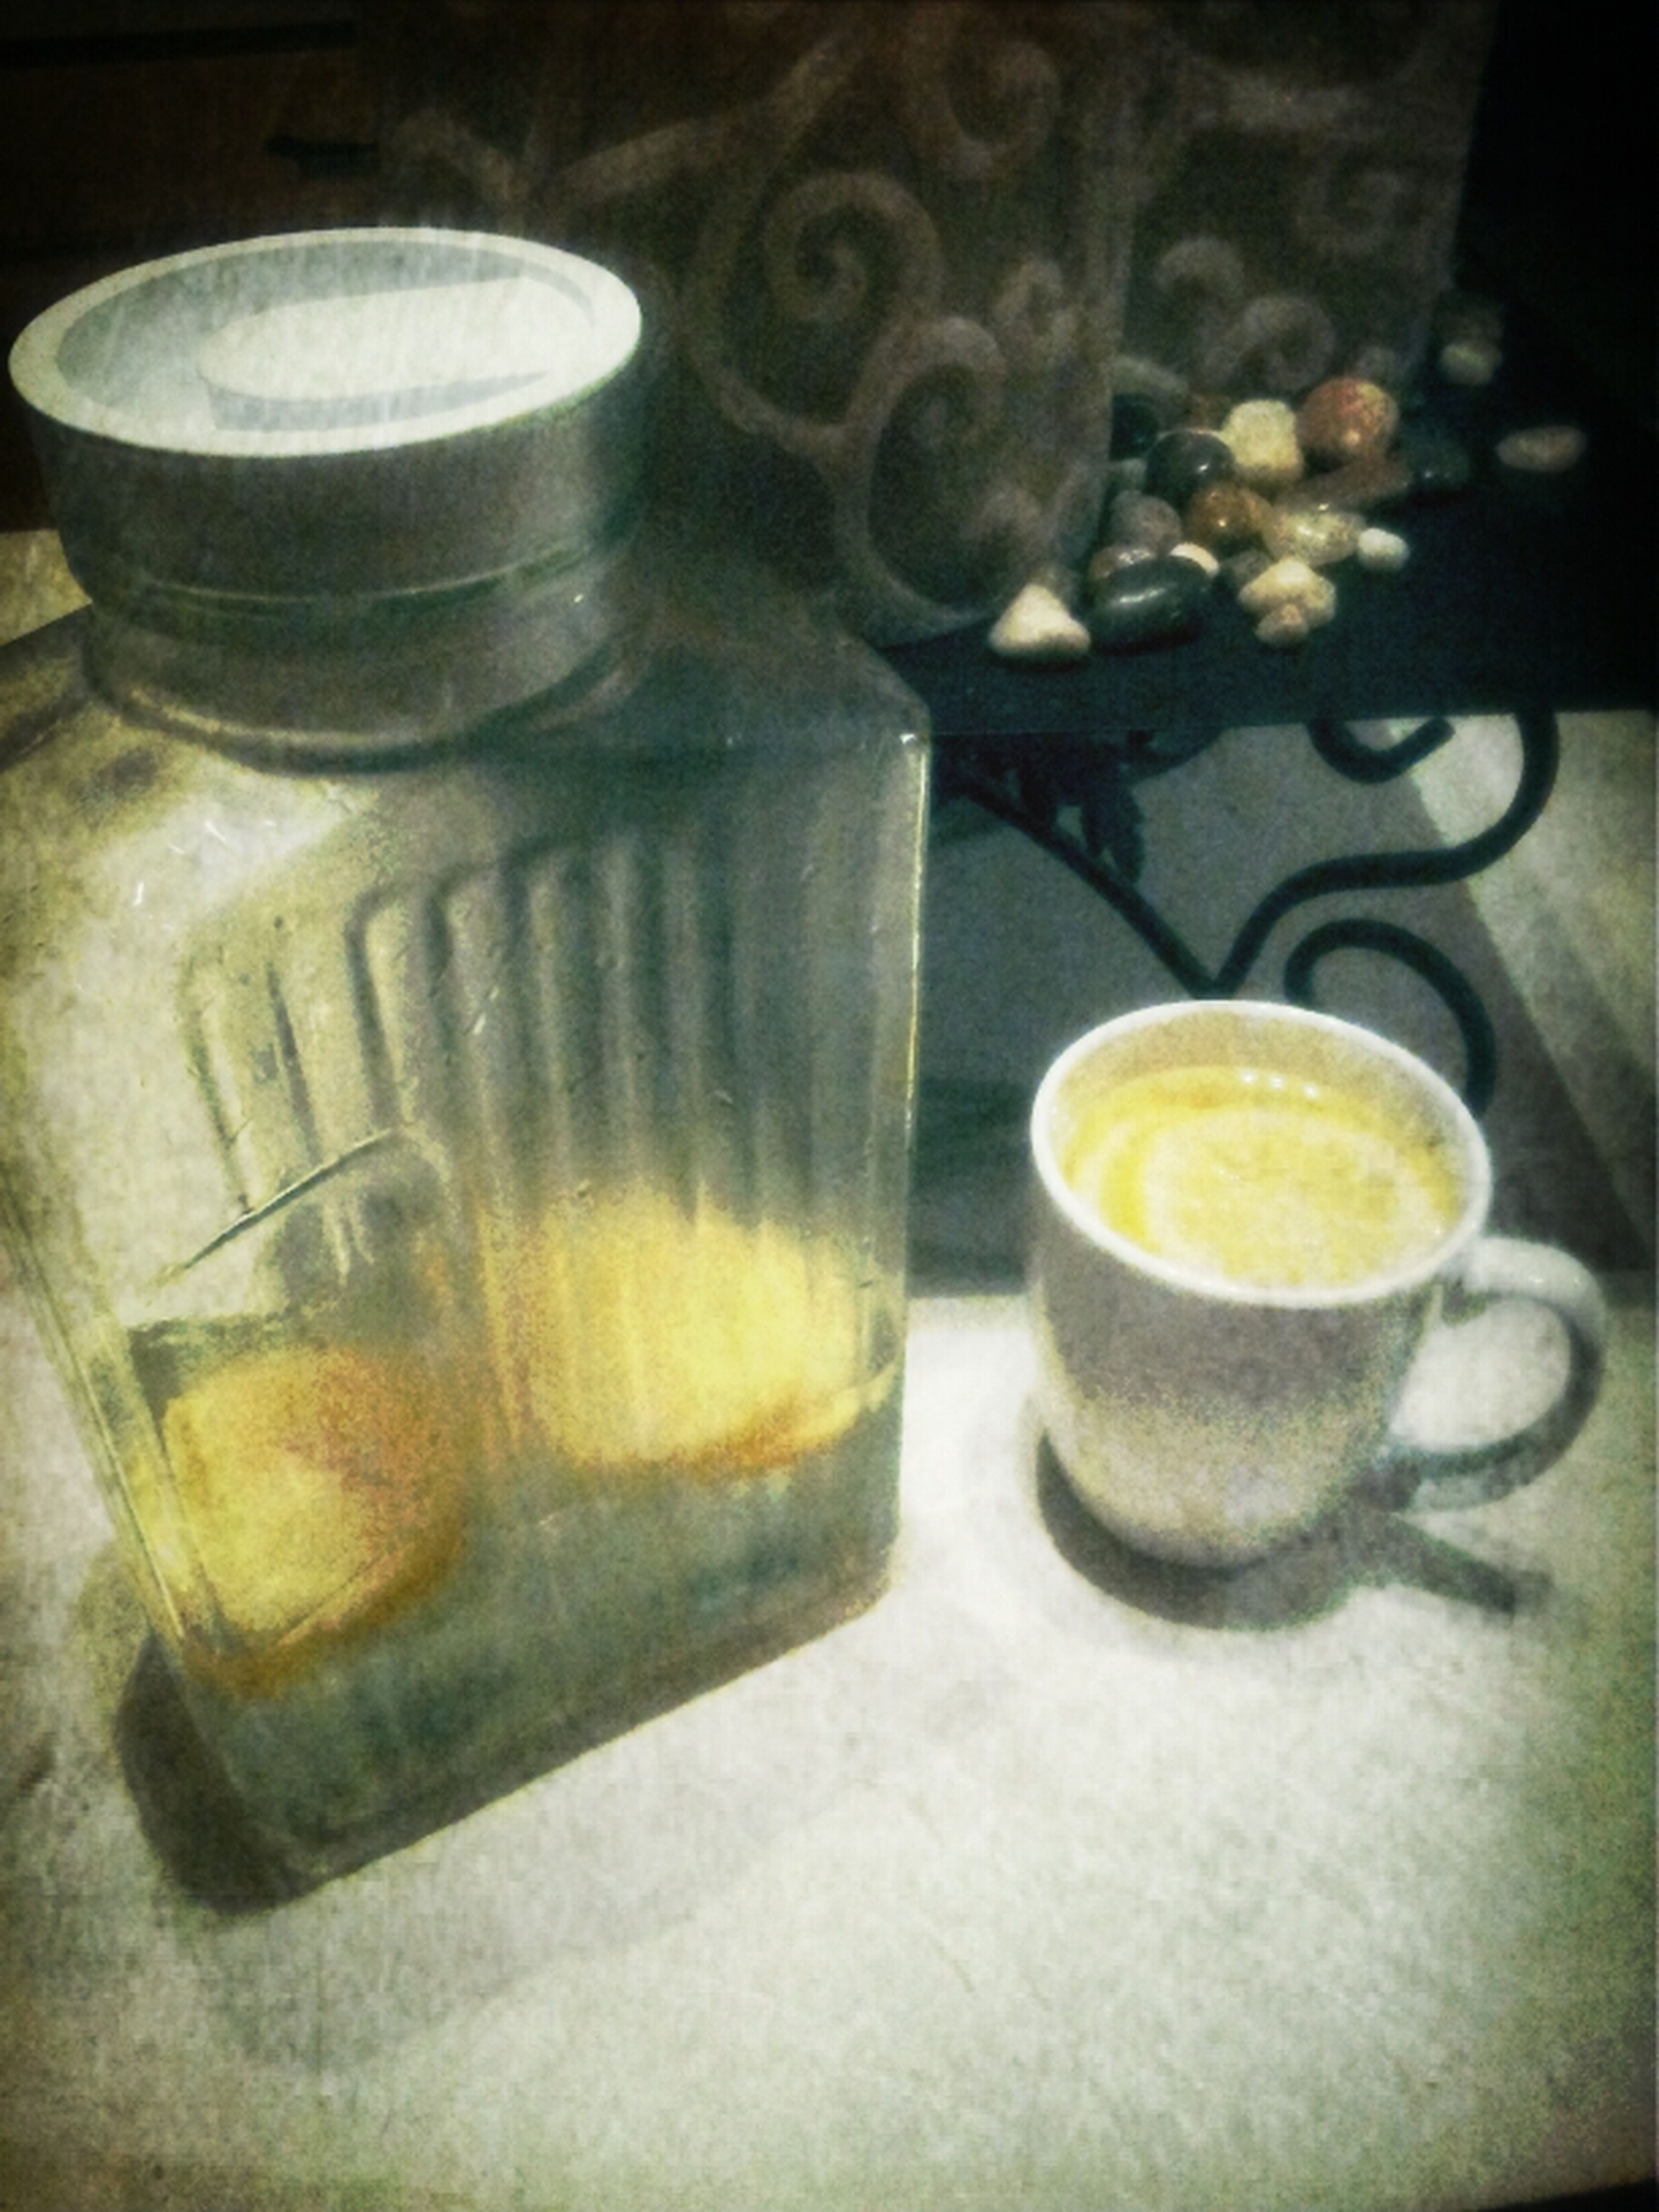 Enjoying my warm lemon water!!! These natural remedies are really working!!!!! Amen!!! :)